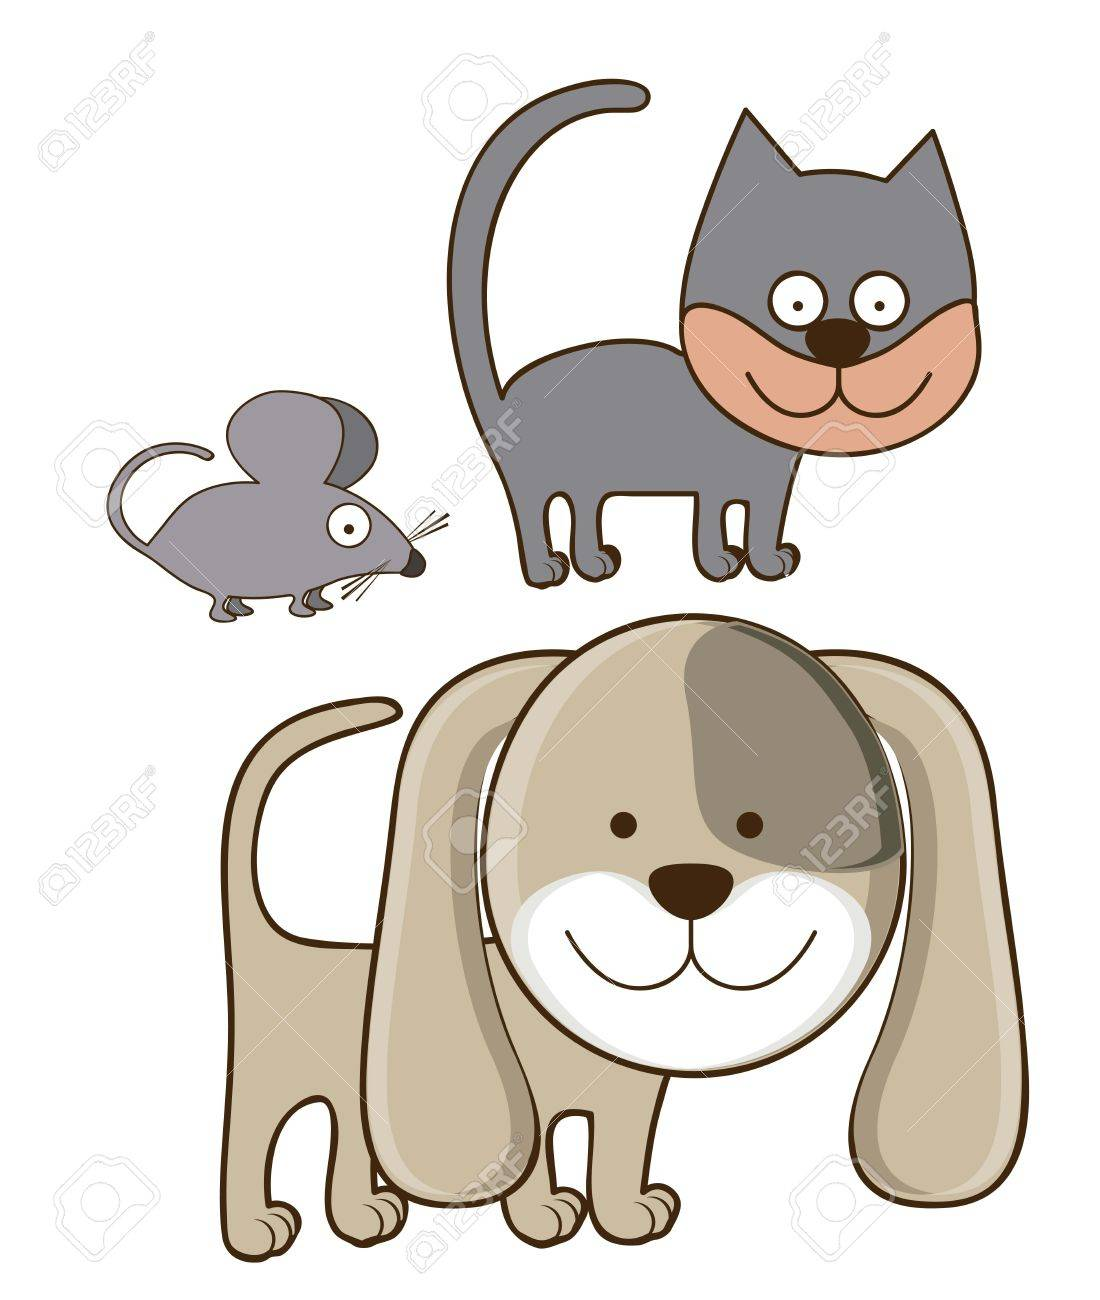 Illustration of Cute Animals. Dog, Cat and mouse illustration. vector illustration Stock Vector - 17887887